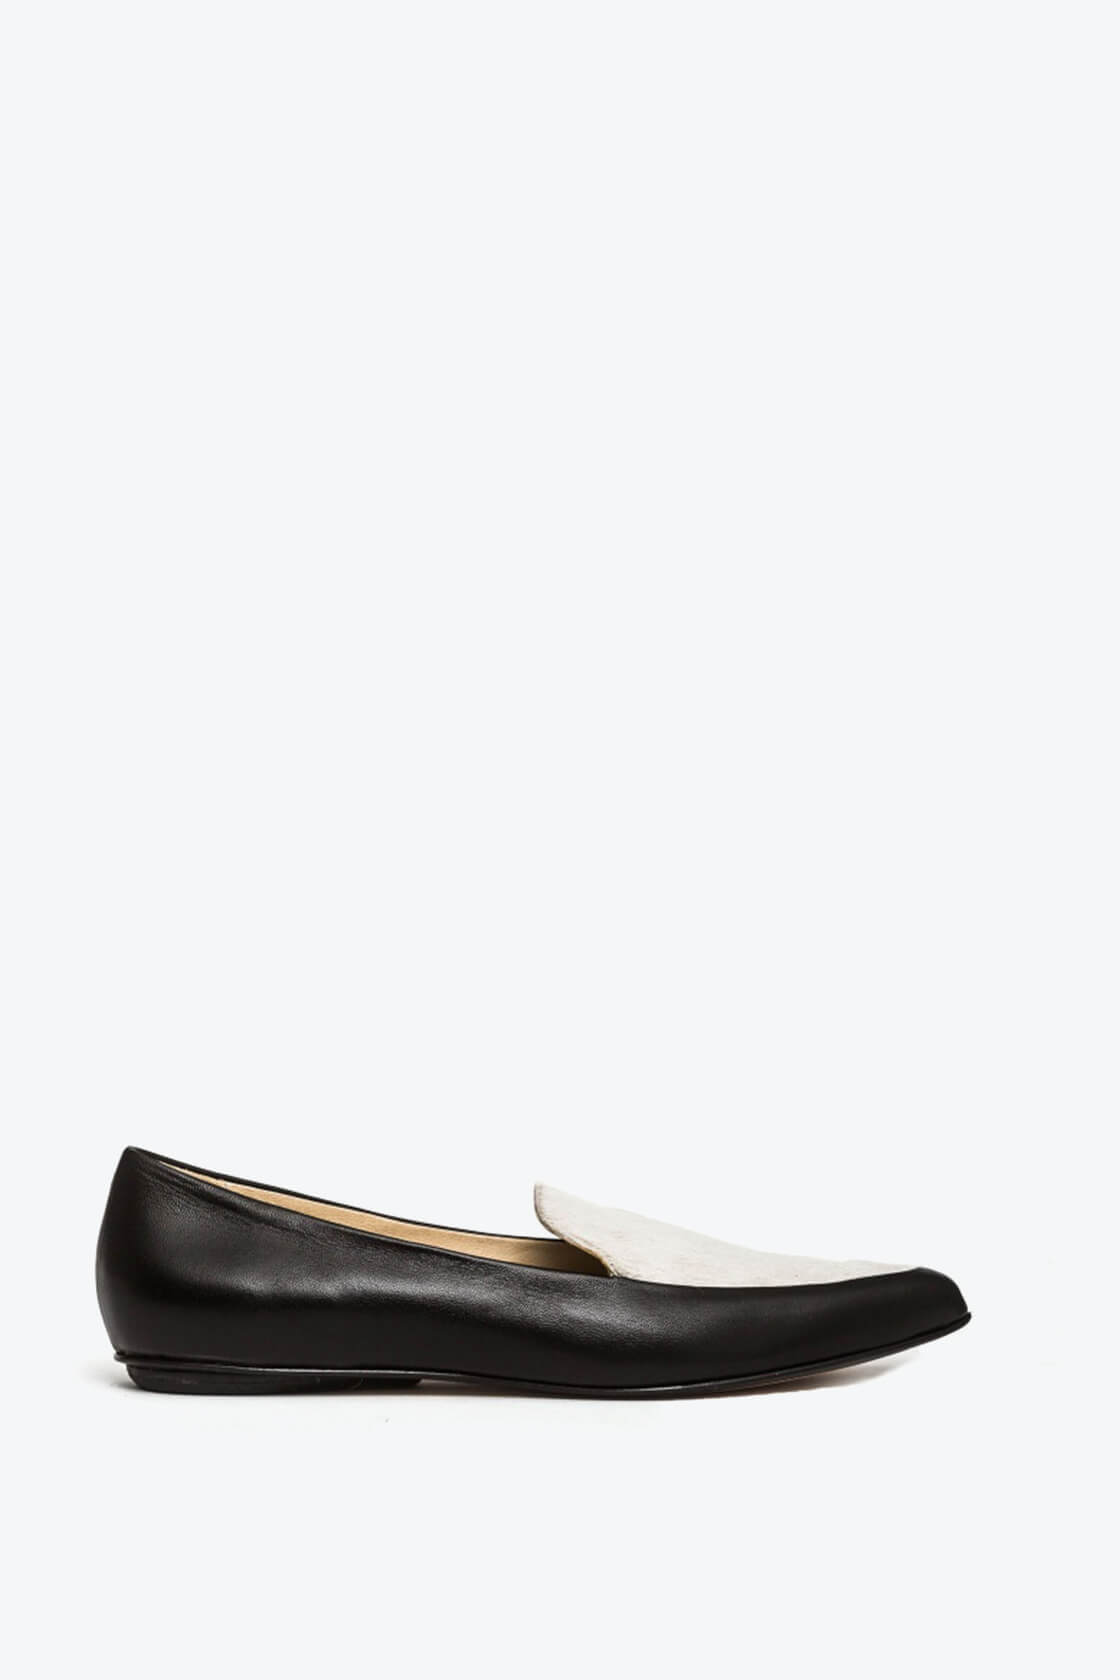 EJK0000067 Molly loafers black cream 1